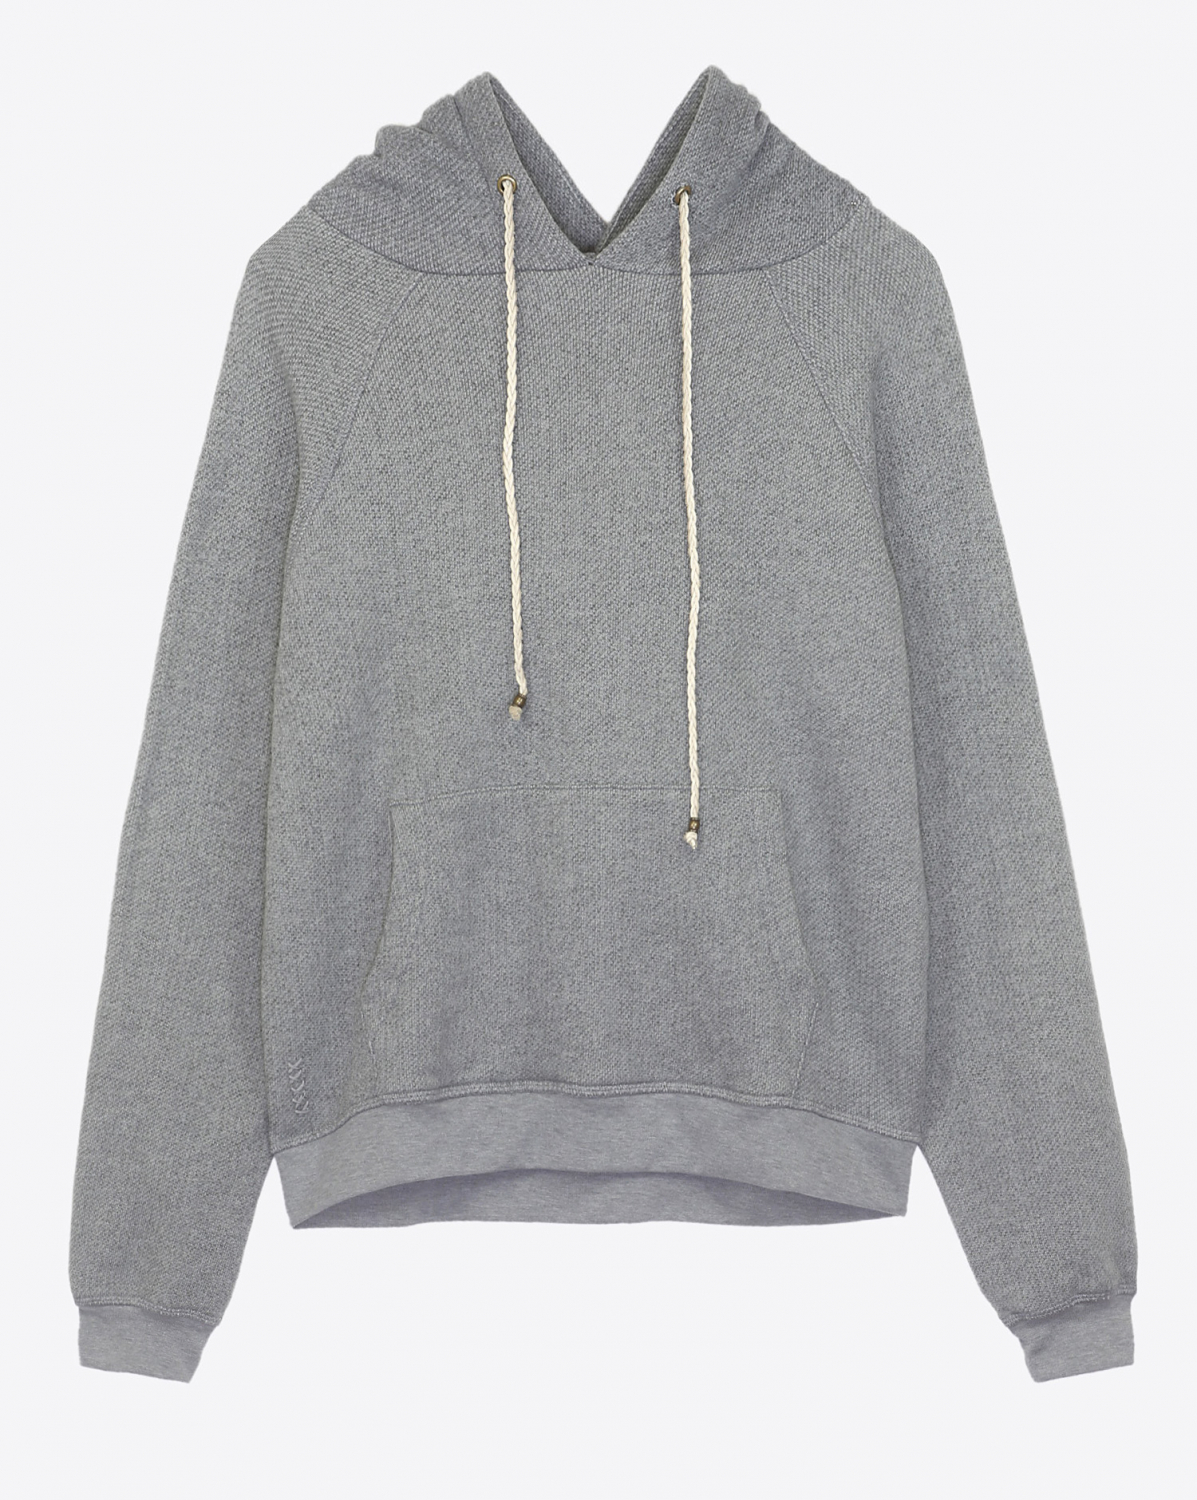 Ragdoll LA Oversized Pull On Hoodie - Grey Melange